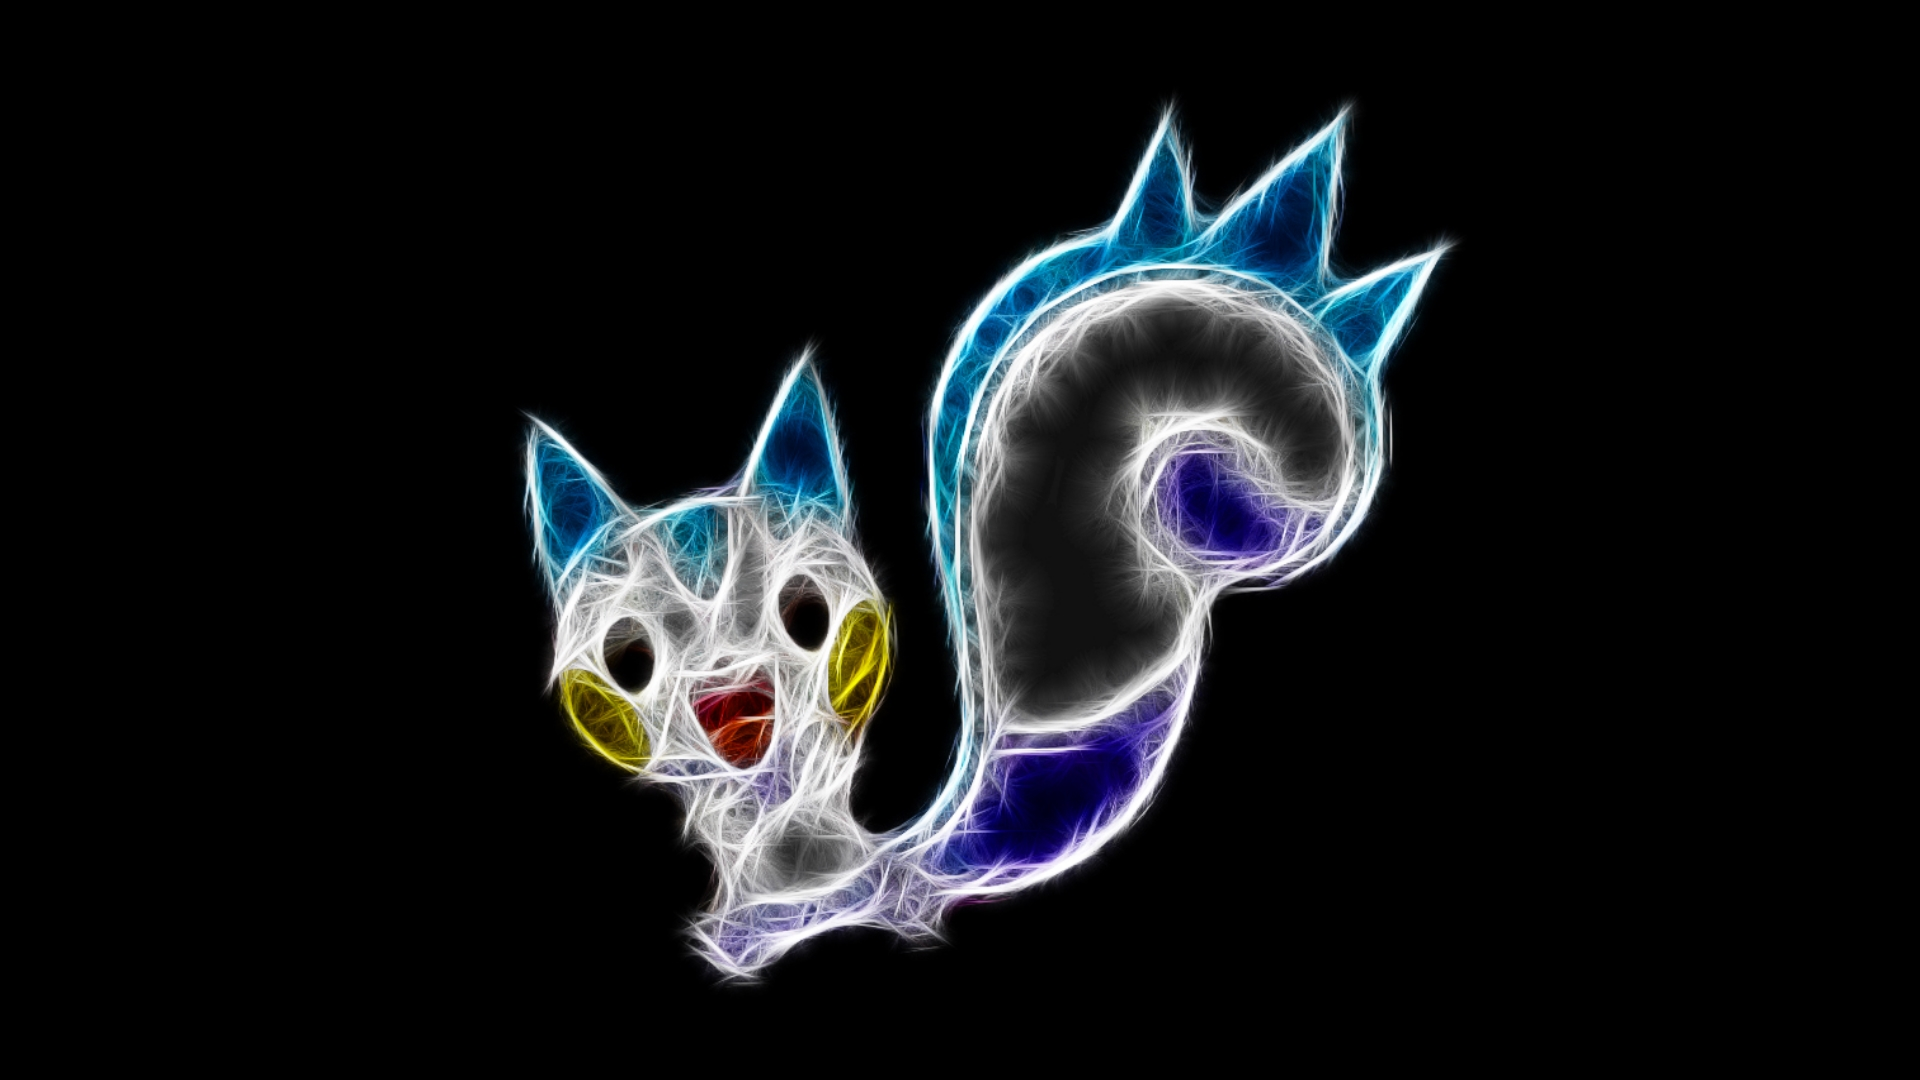 Pachirisu2 by TheBlackSavior on DeviantArt